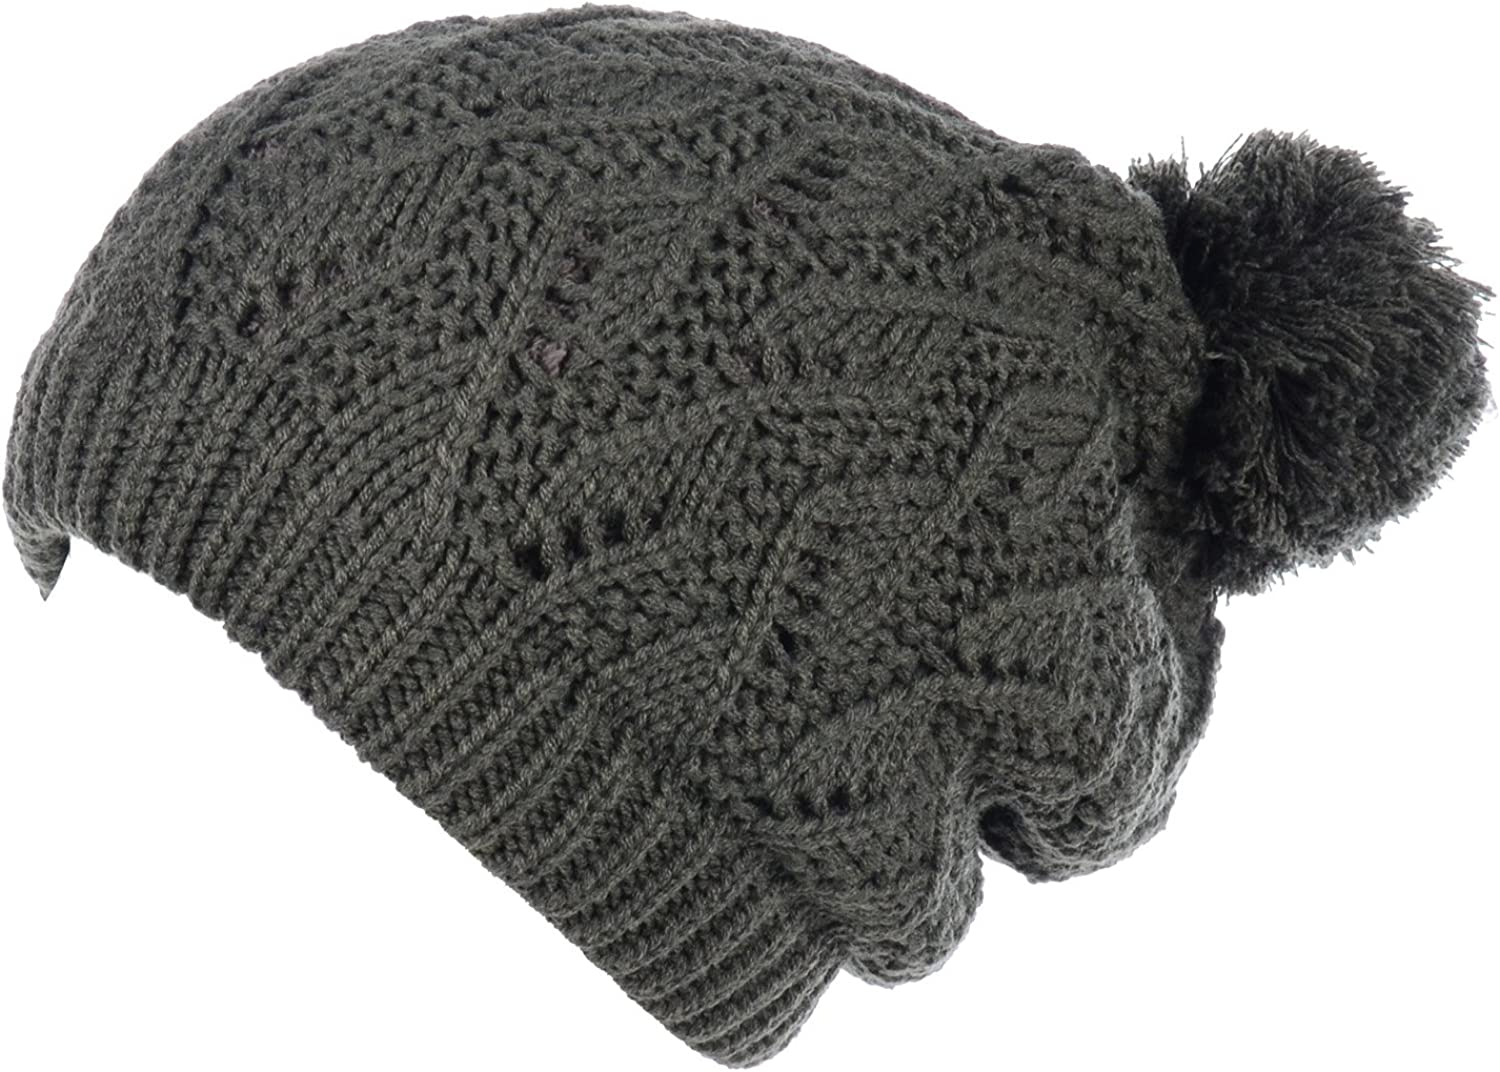 Be Your Own Style BYOS Womens Winter Cute Warm Plush Fleece Lined Leafy Knitted Beret Beanie Hat with Pom,Slouchy Relaxed Fit